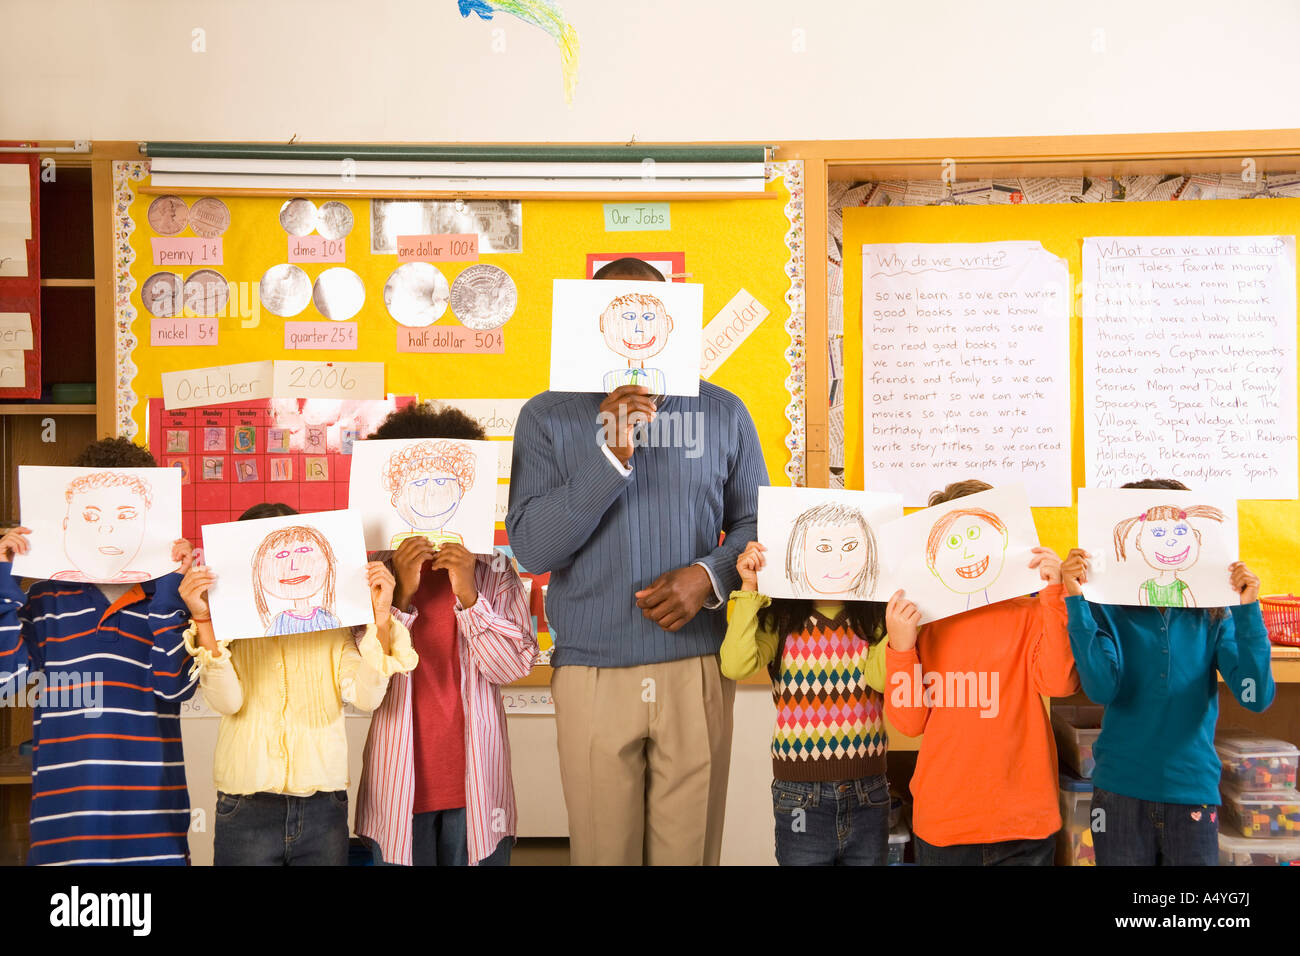 Male teacher and students holding drawings over faces - Stock Image